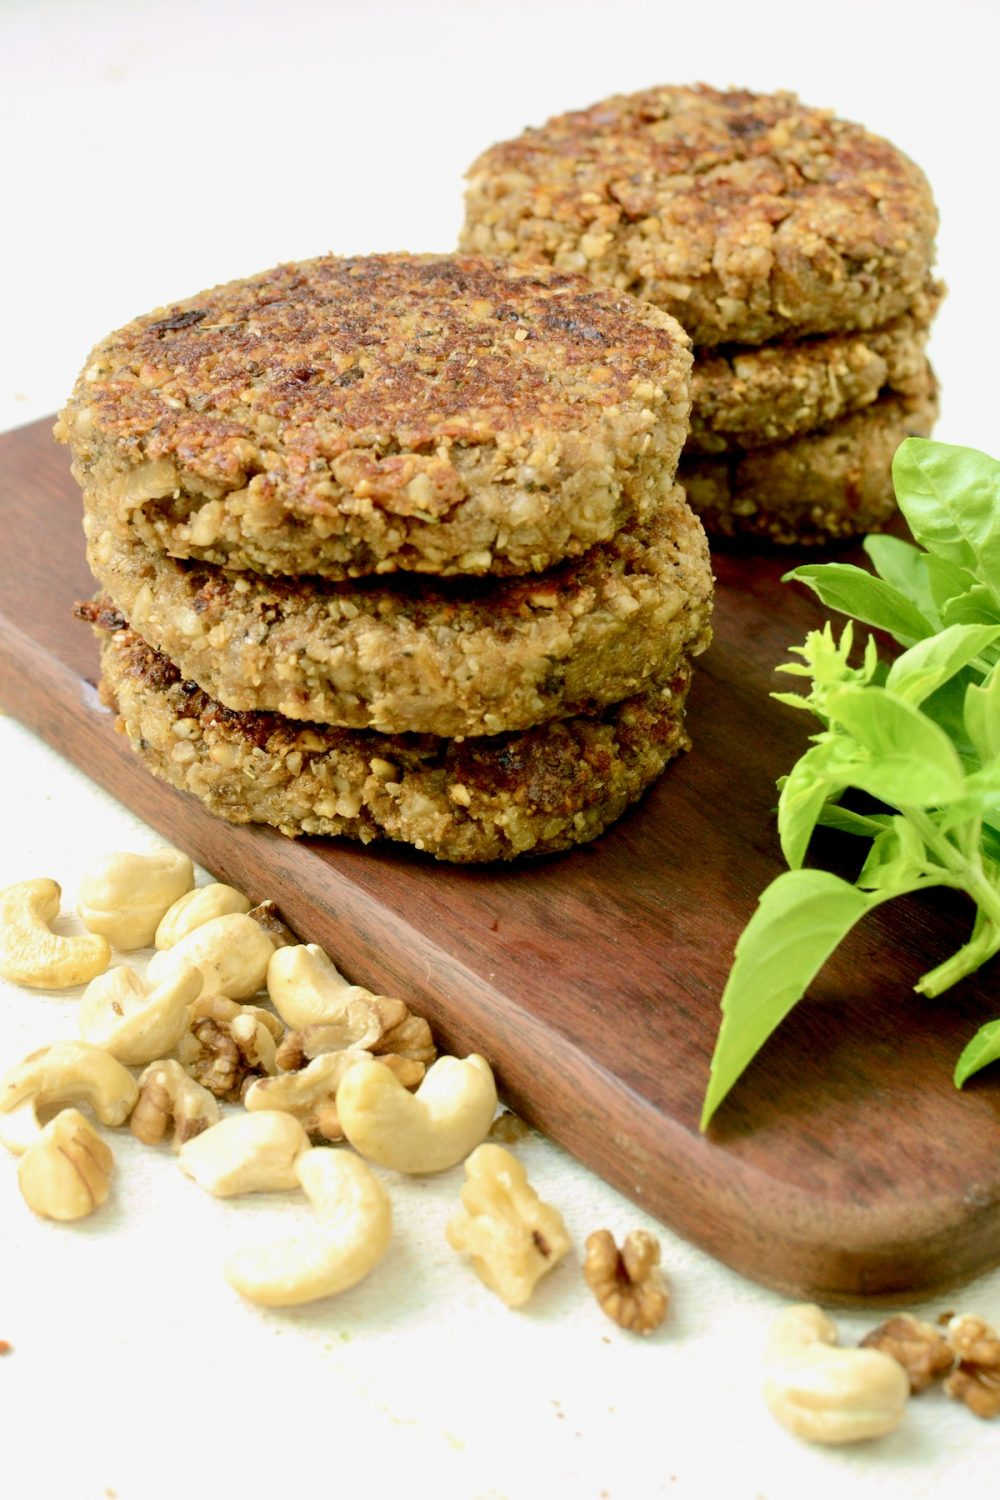 Some cooked nut burgers stacked on a dark wooden board.